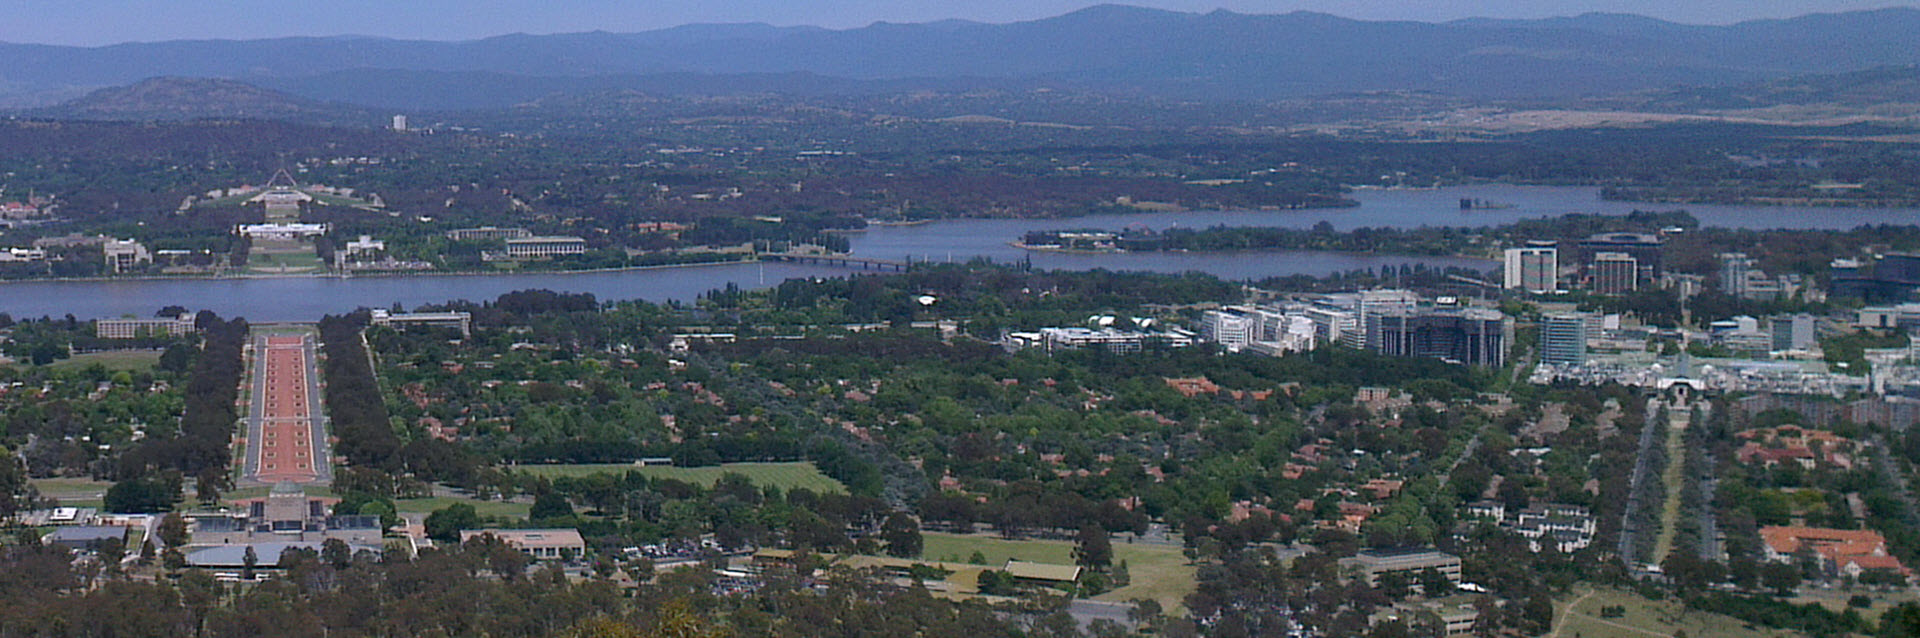 Canberra is growing, but how to accomodate growth